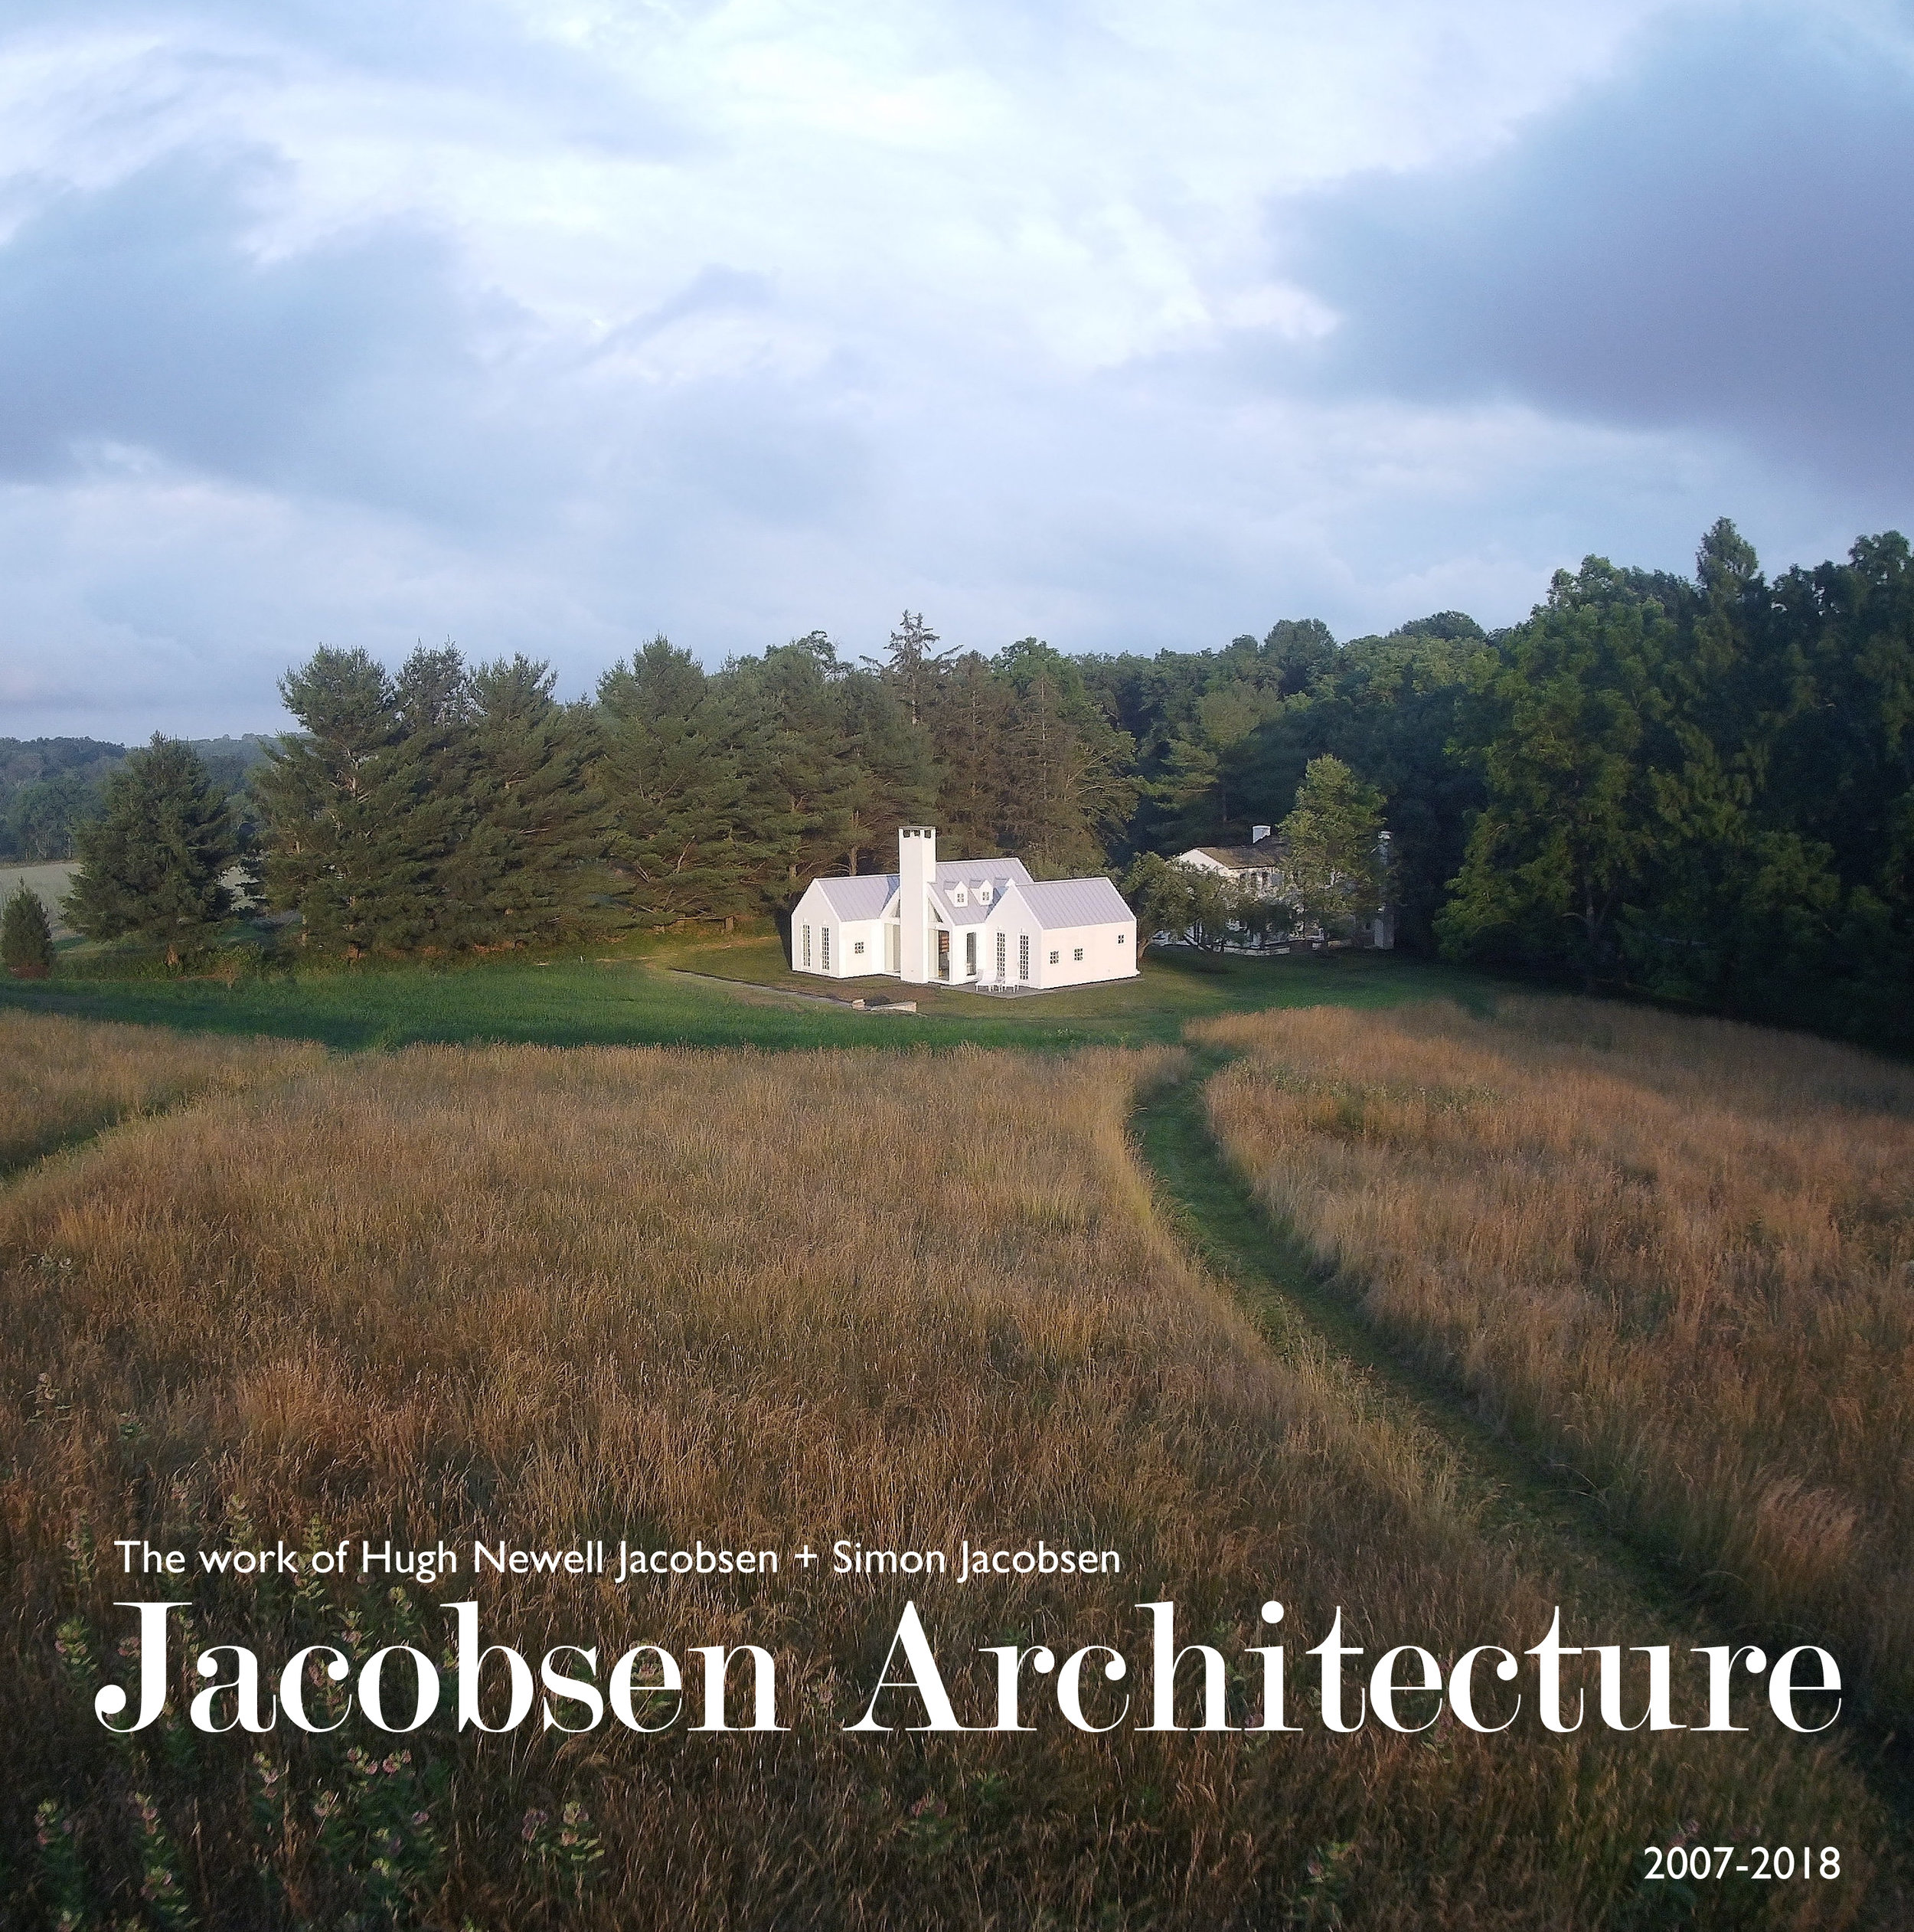 Jacobsen Book IV in development... - The firm is wrapping up and shooting the remaining projects that will be the fourth book on the firm's latest work entitled